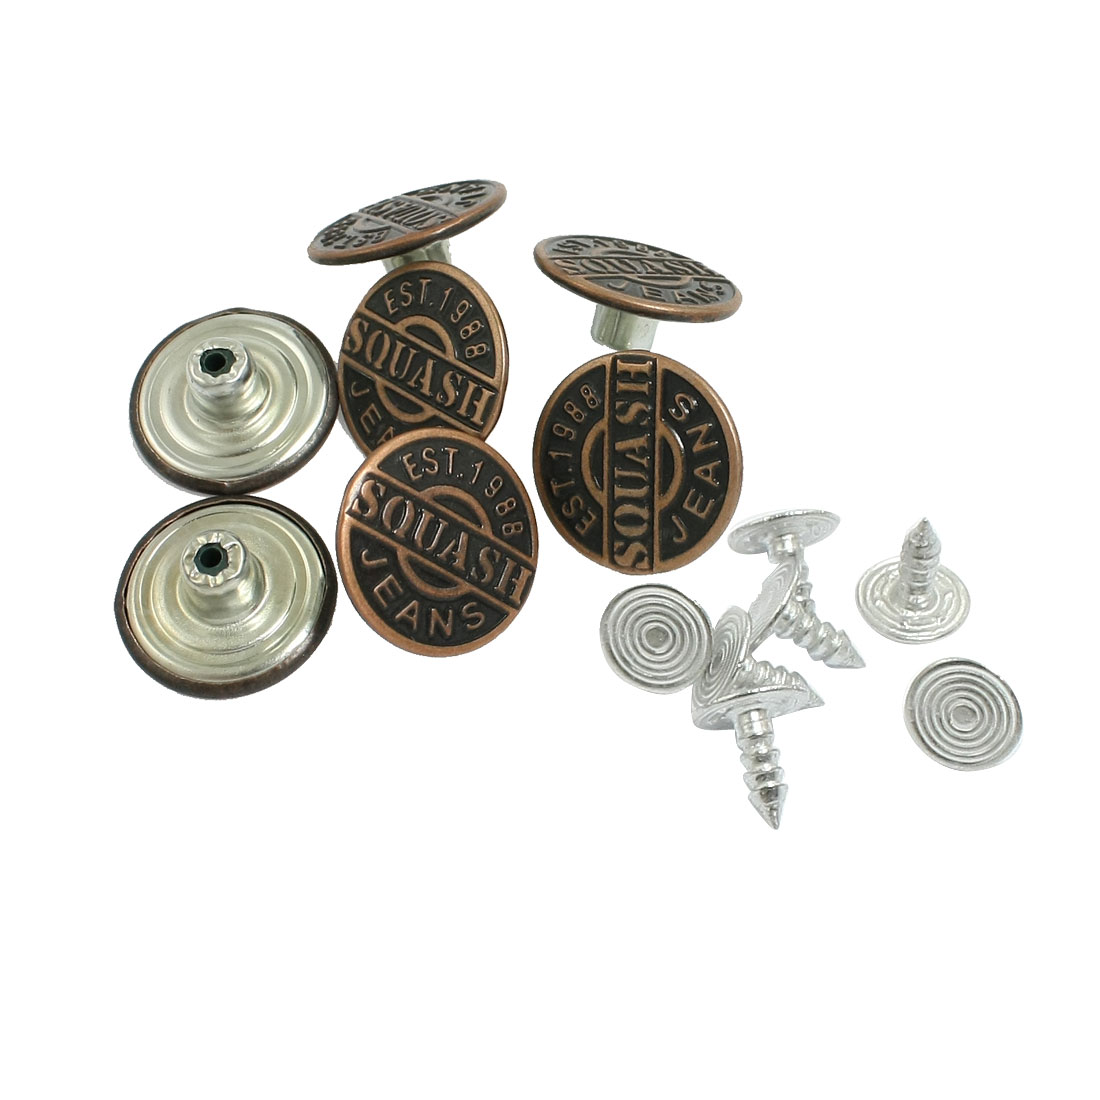 7 X Replacing Part Copper Tone Metal Carved Words Jeans Buttons